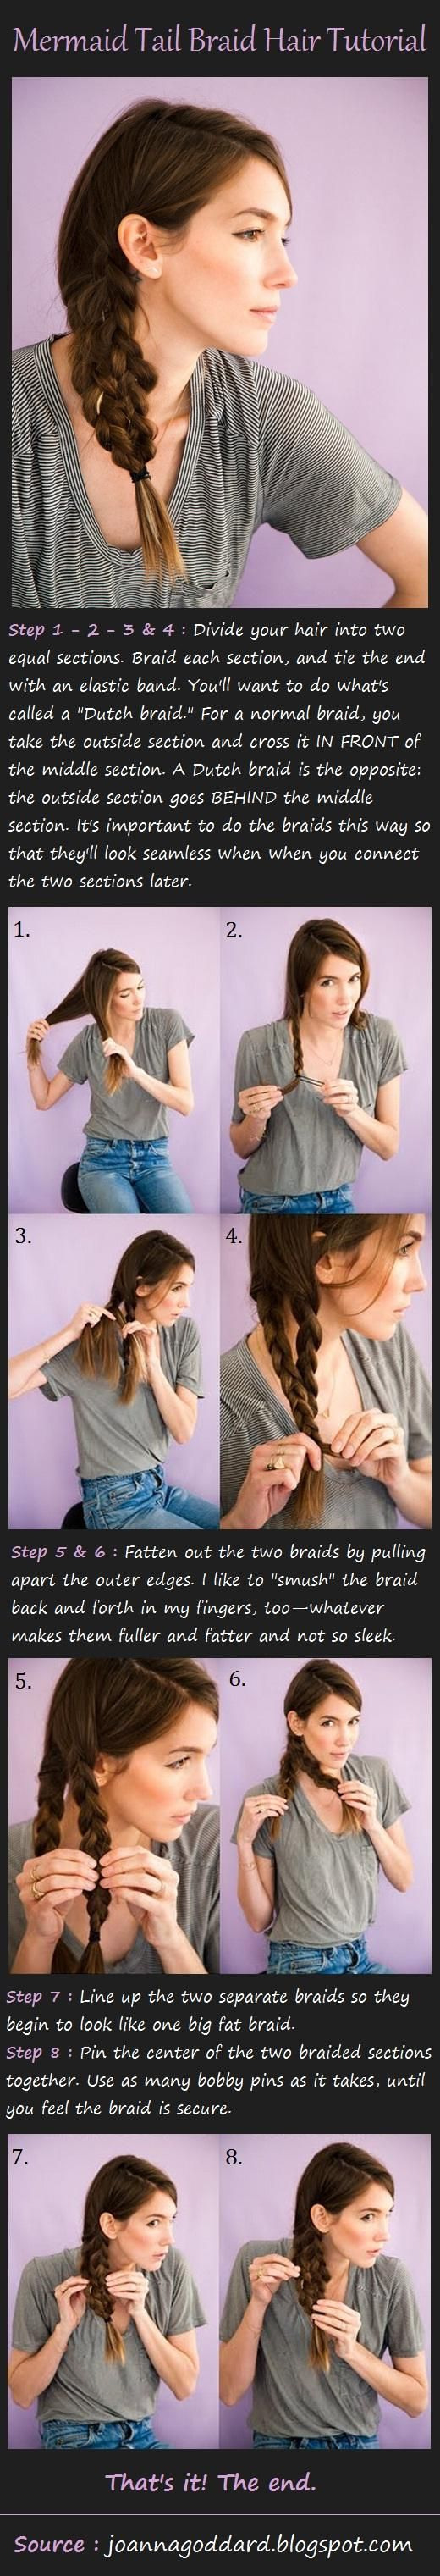 Mermaid Tail Braid Tutorial - Hairstyles and Beauty Tips